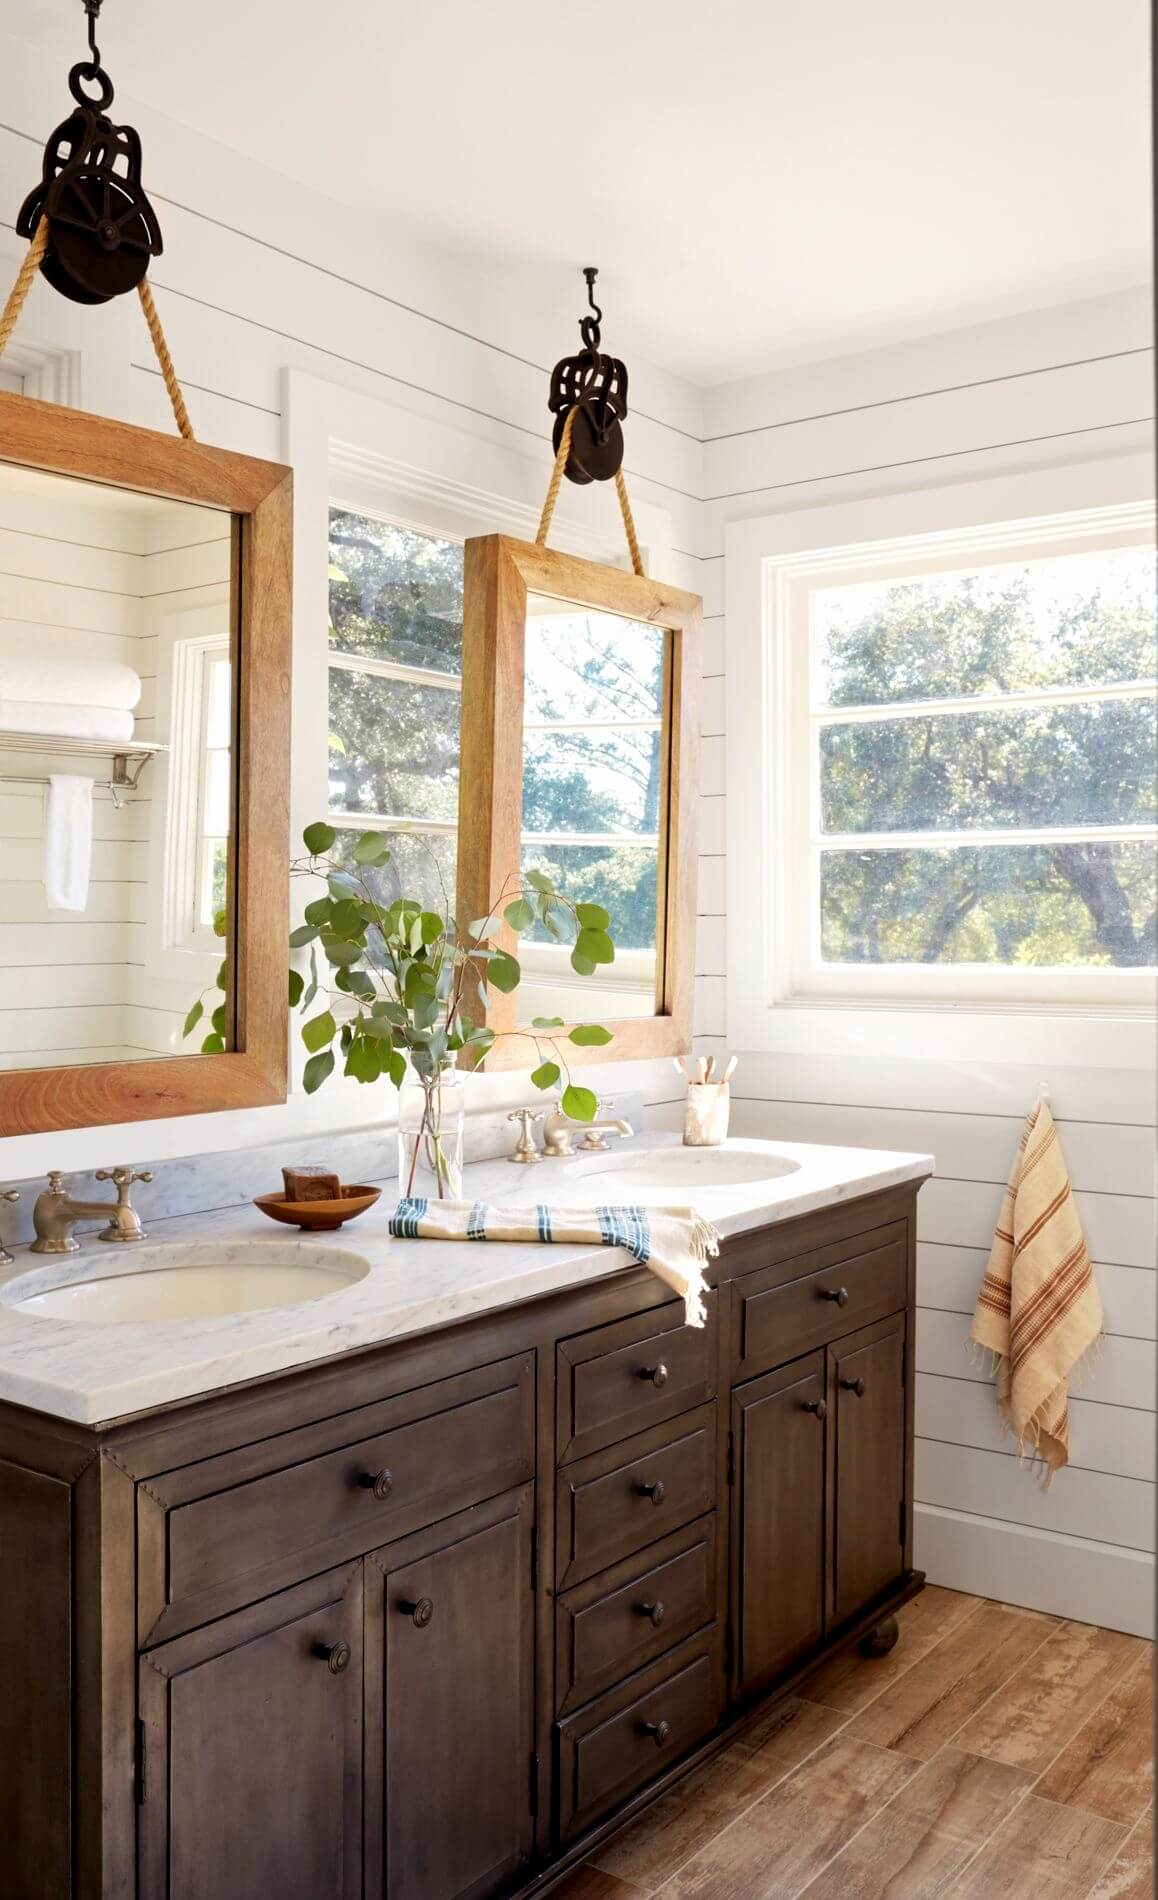 Best 35 Best Rustic Bathroom Vanity Ideas And Designs For 2019 This Month